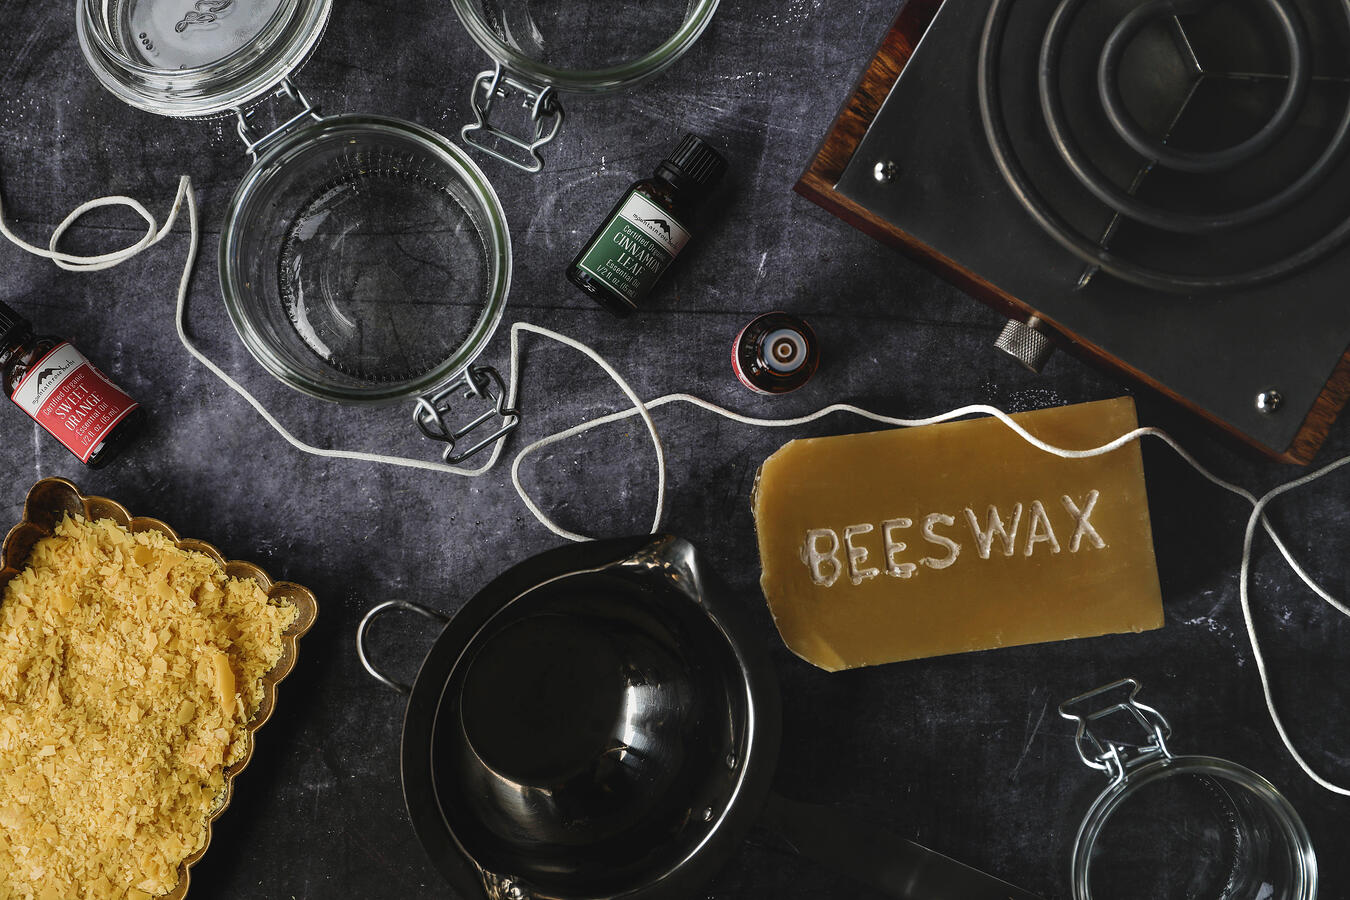 Beeswax, carnauba wax, essential oils, and other candle making supplies laid out on a table